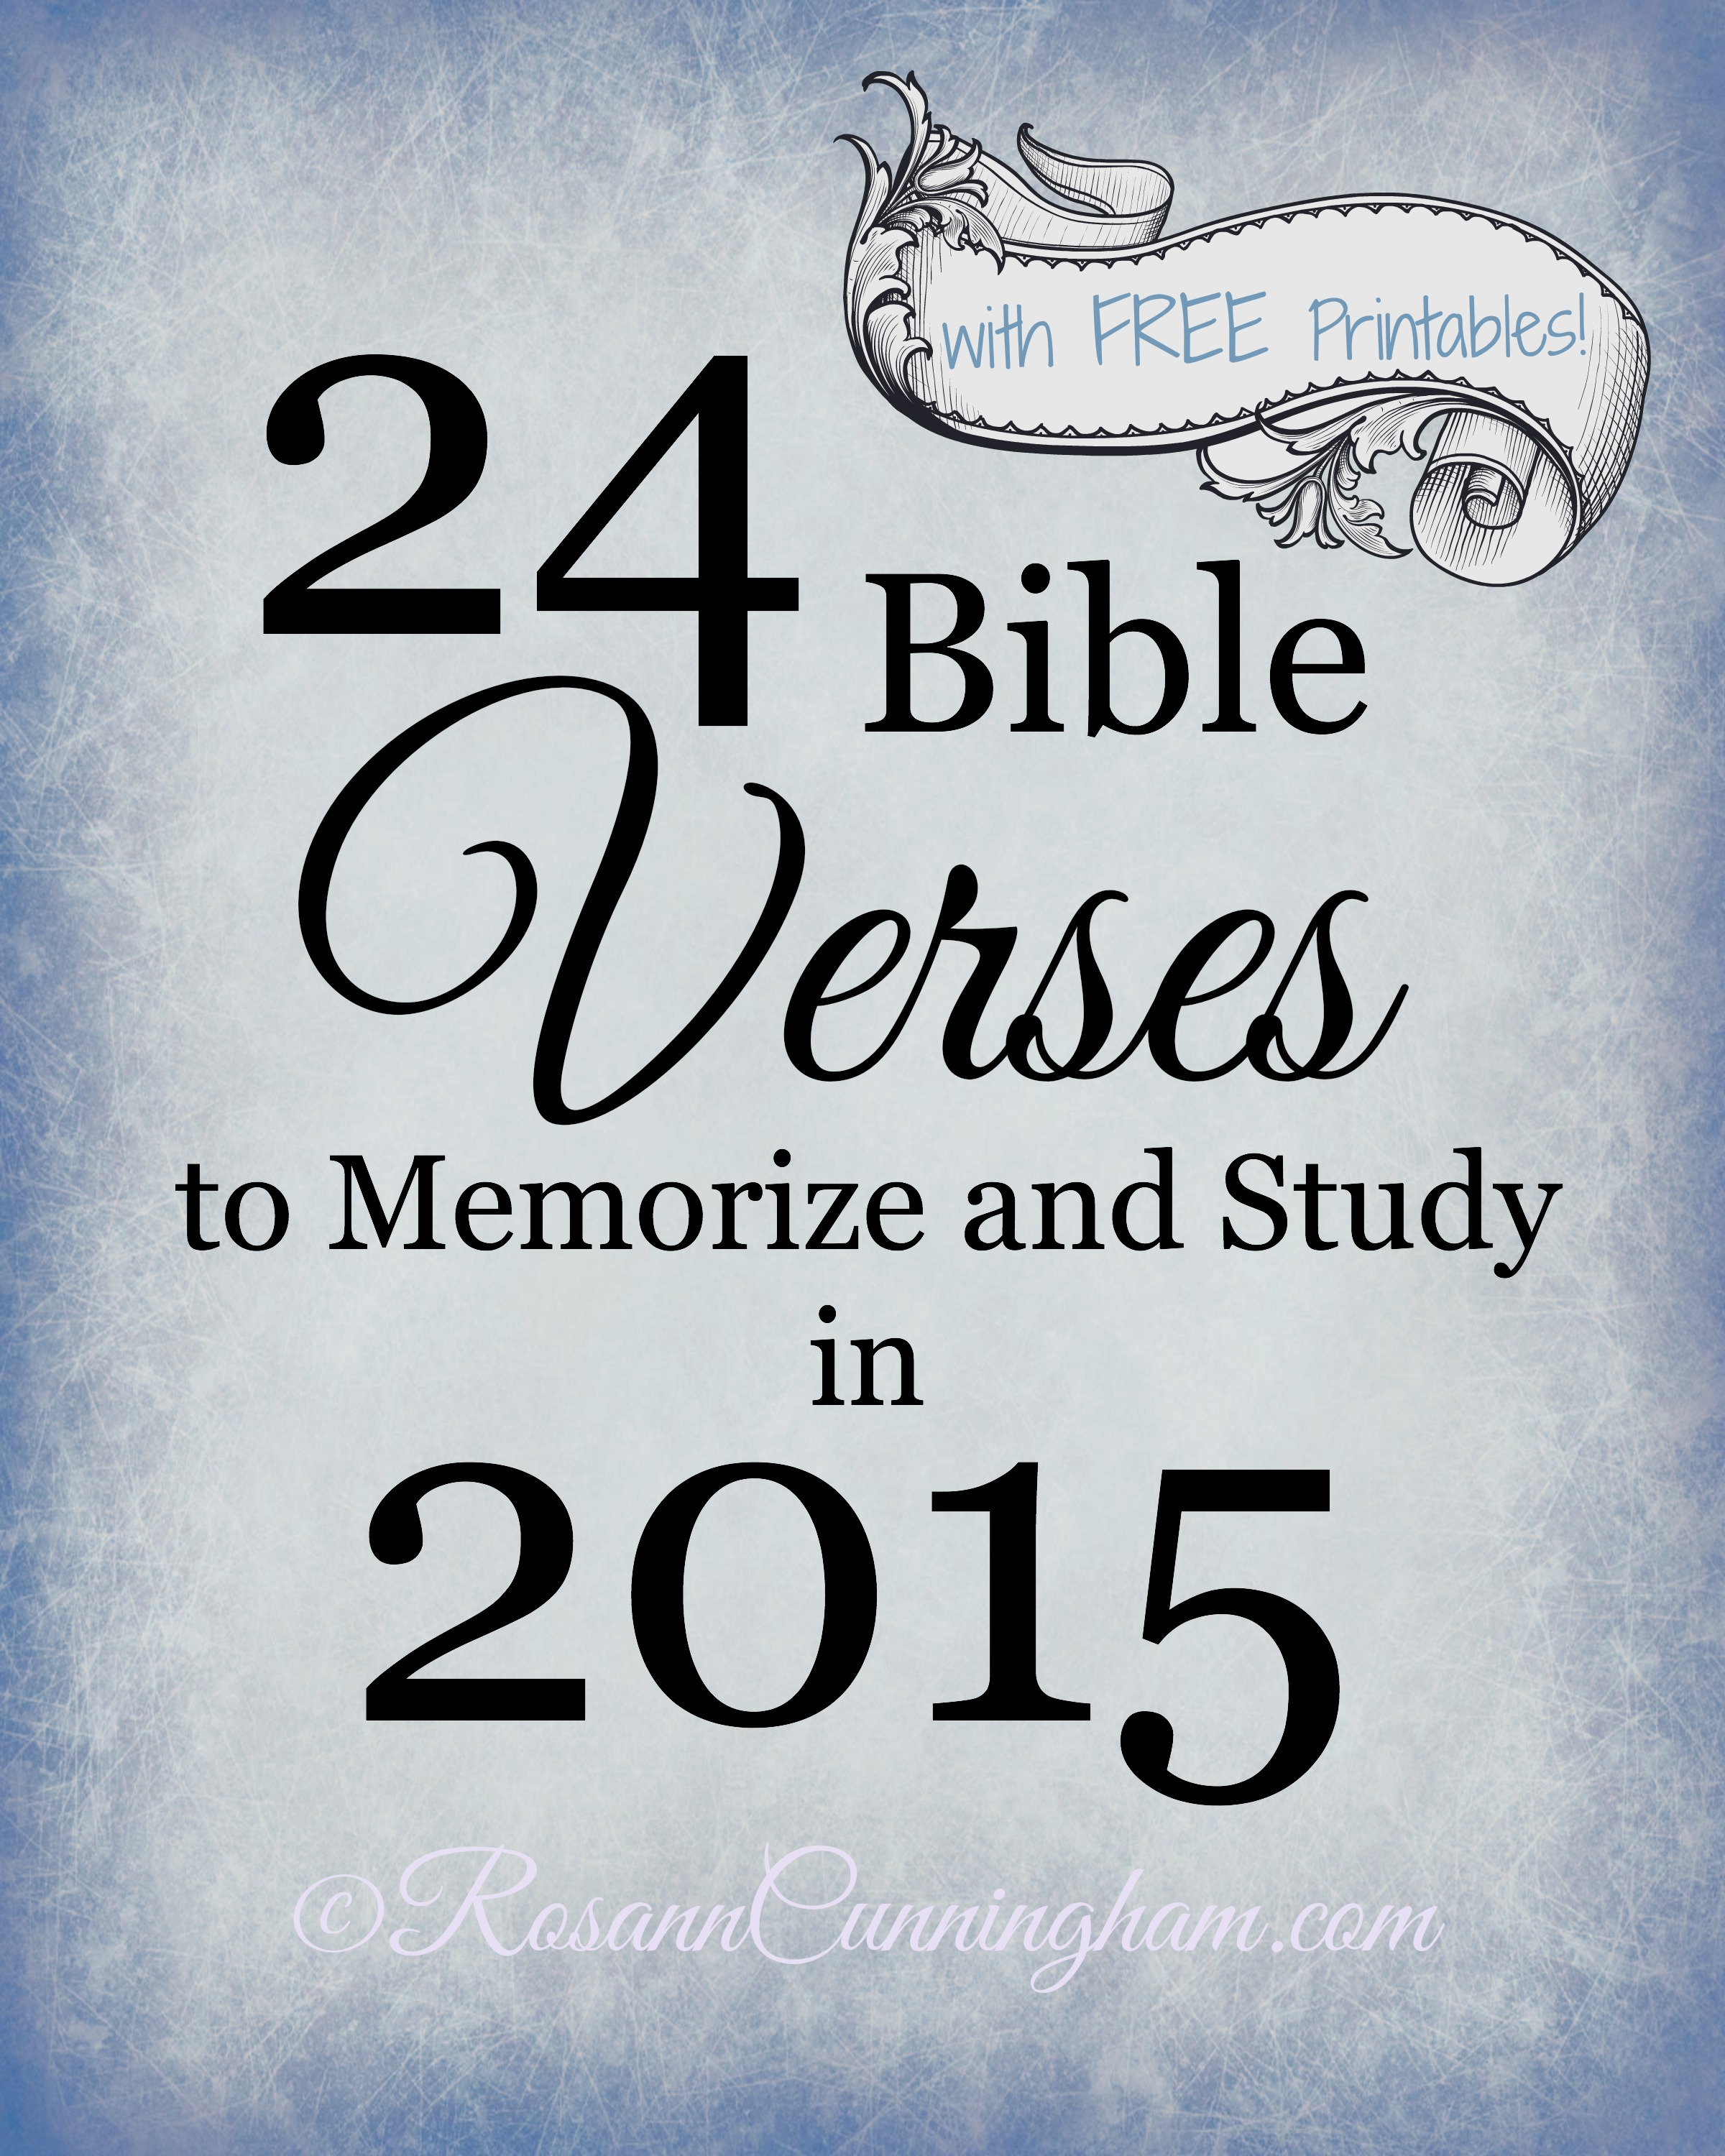 24 bible verses to memorize and study in 2015 with free